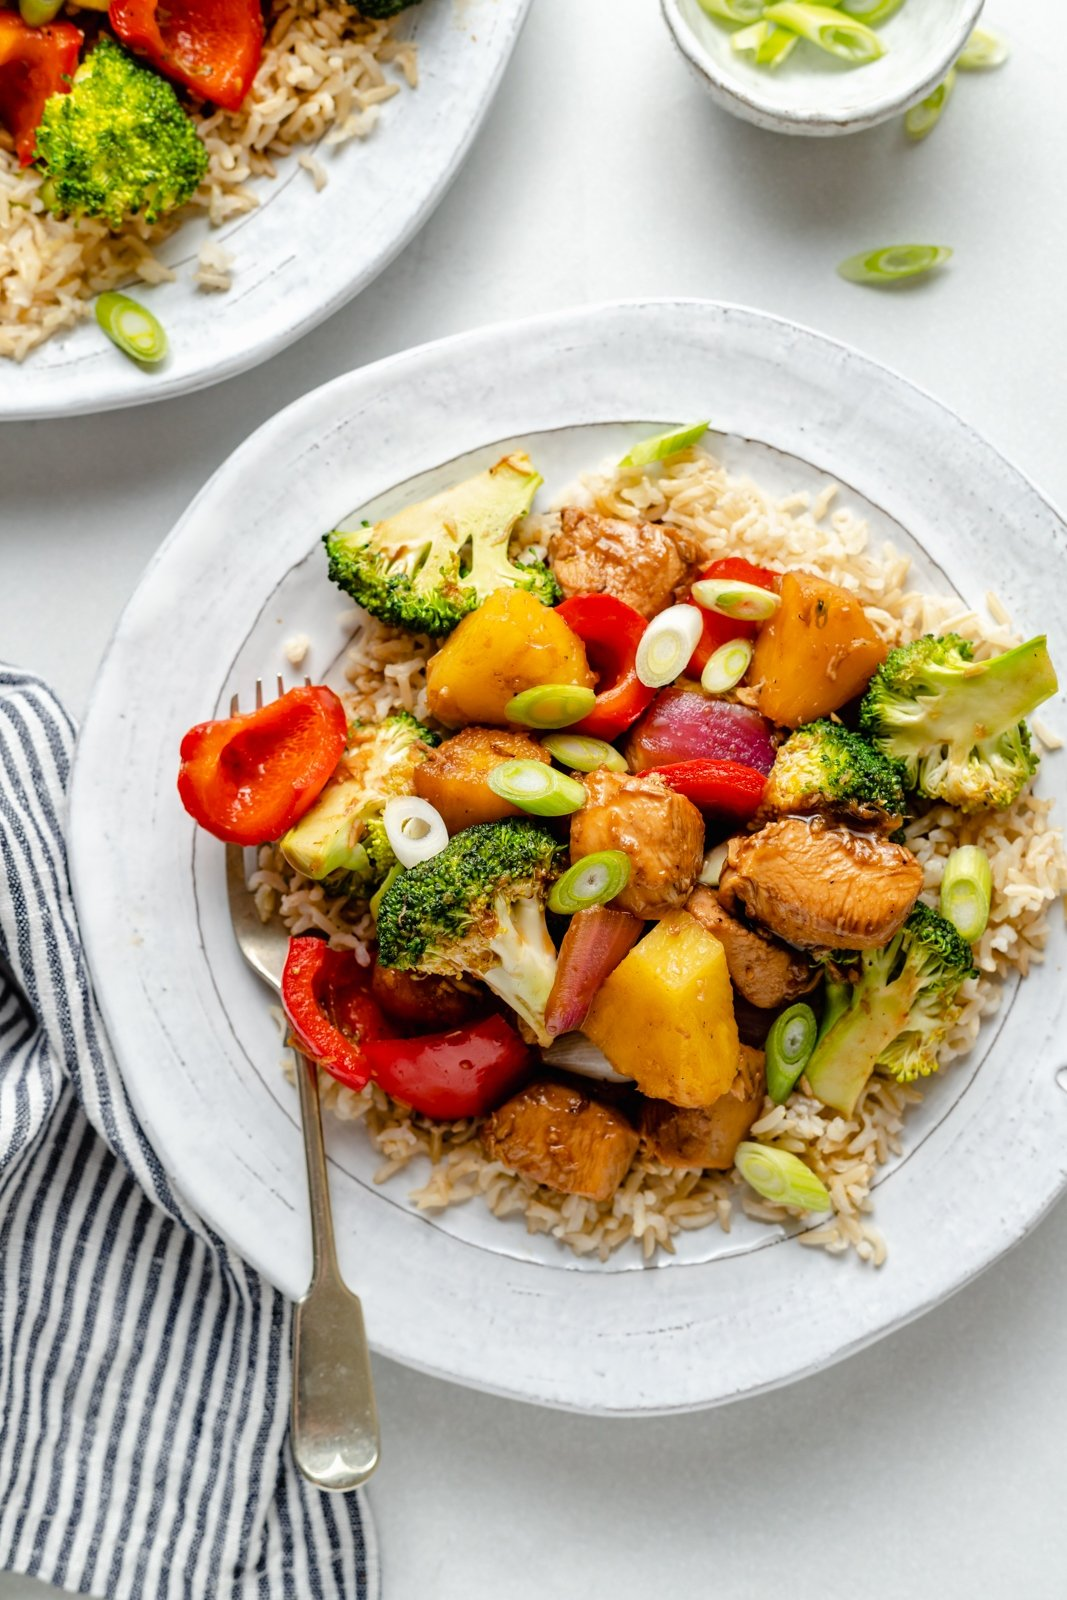 sweet and sour chicken stir fry with pineapple and broccoli on a plate